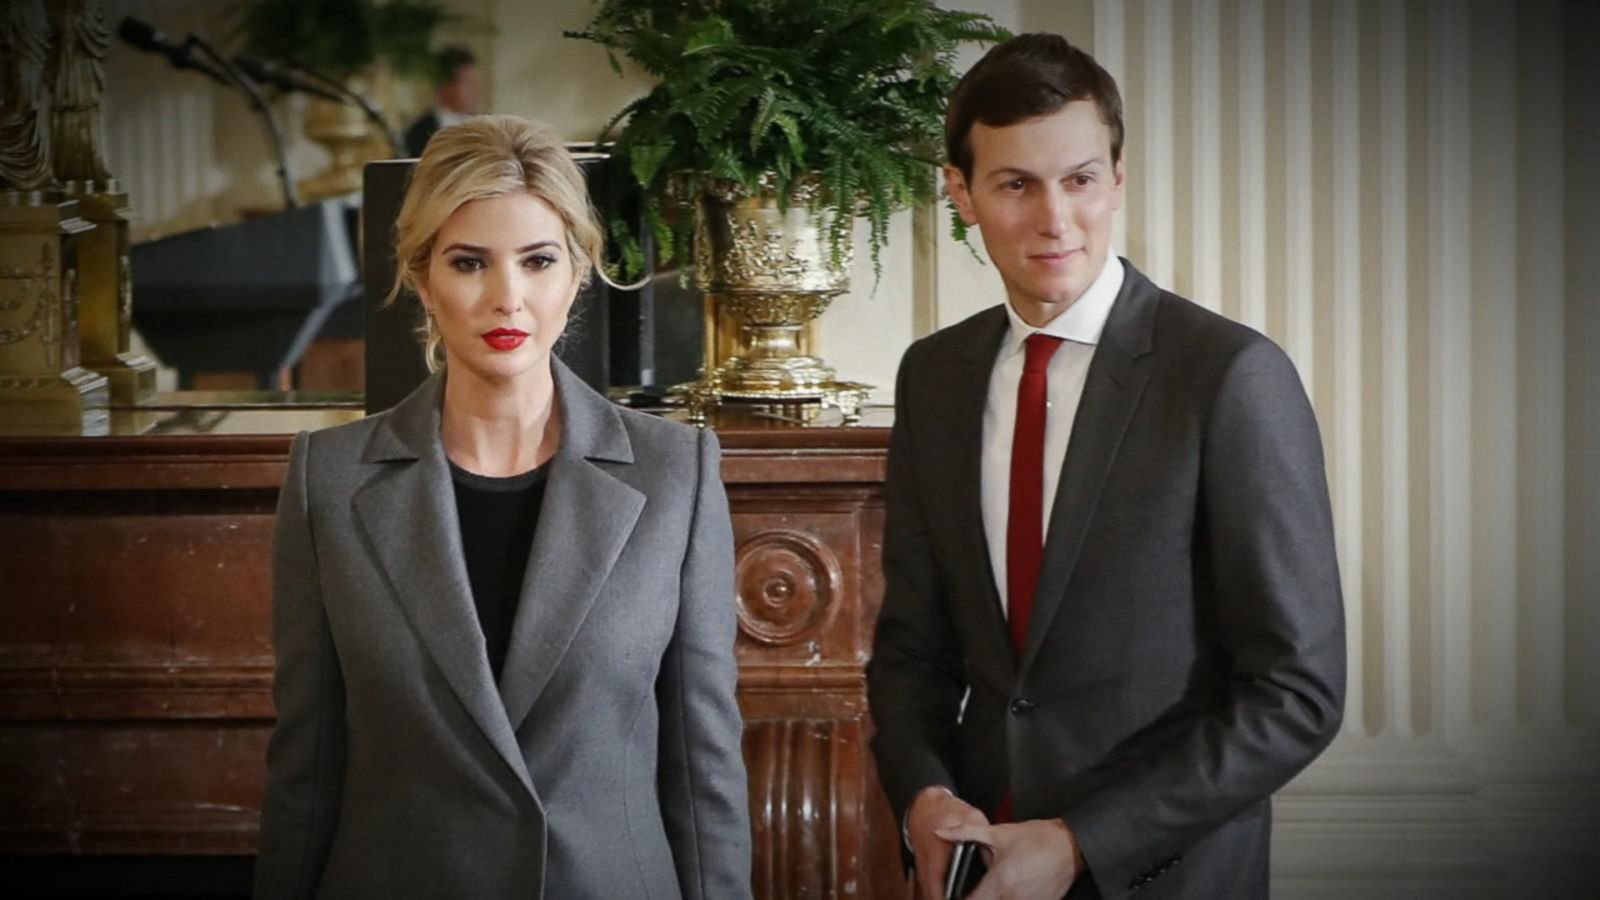 abcnews.go.com - The Associated Press - Bill targets 'Kushner loophole' allowing false filings